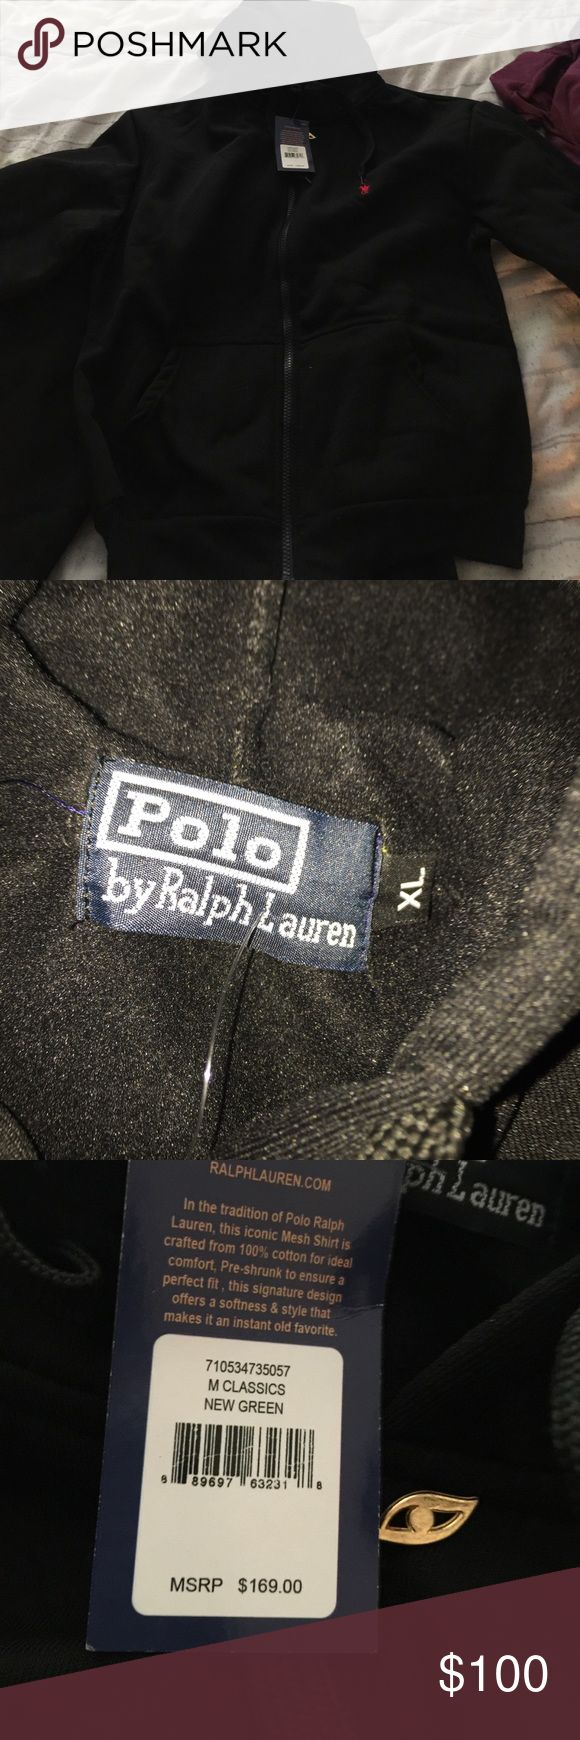 Polo female jogging suit xl Black Polo by Ralph Lauren Other